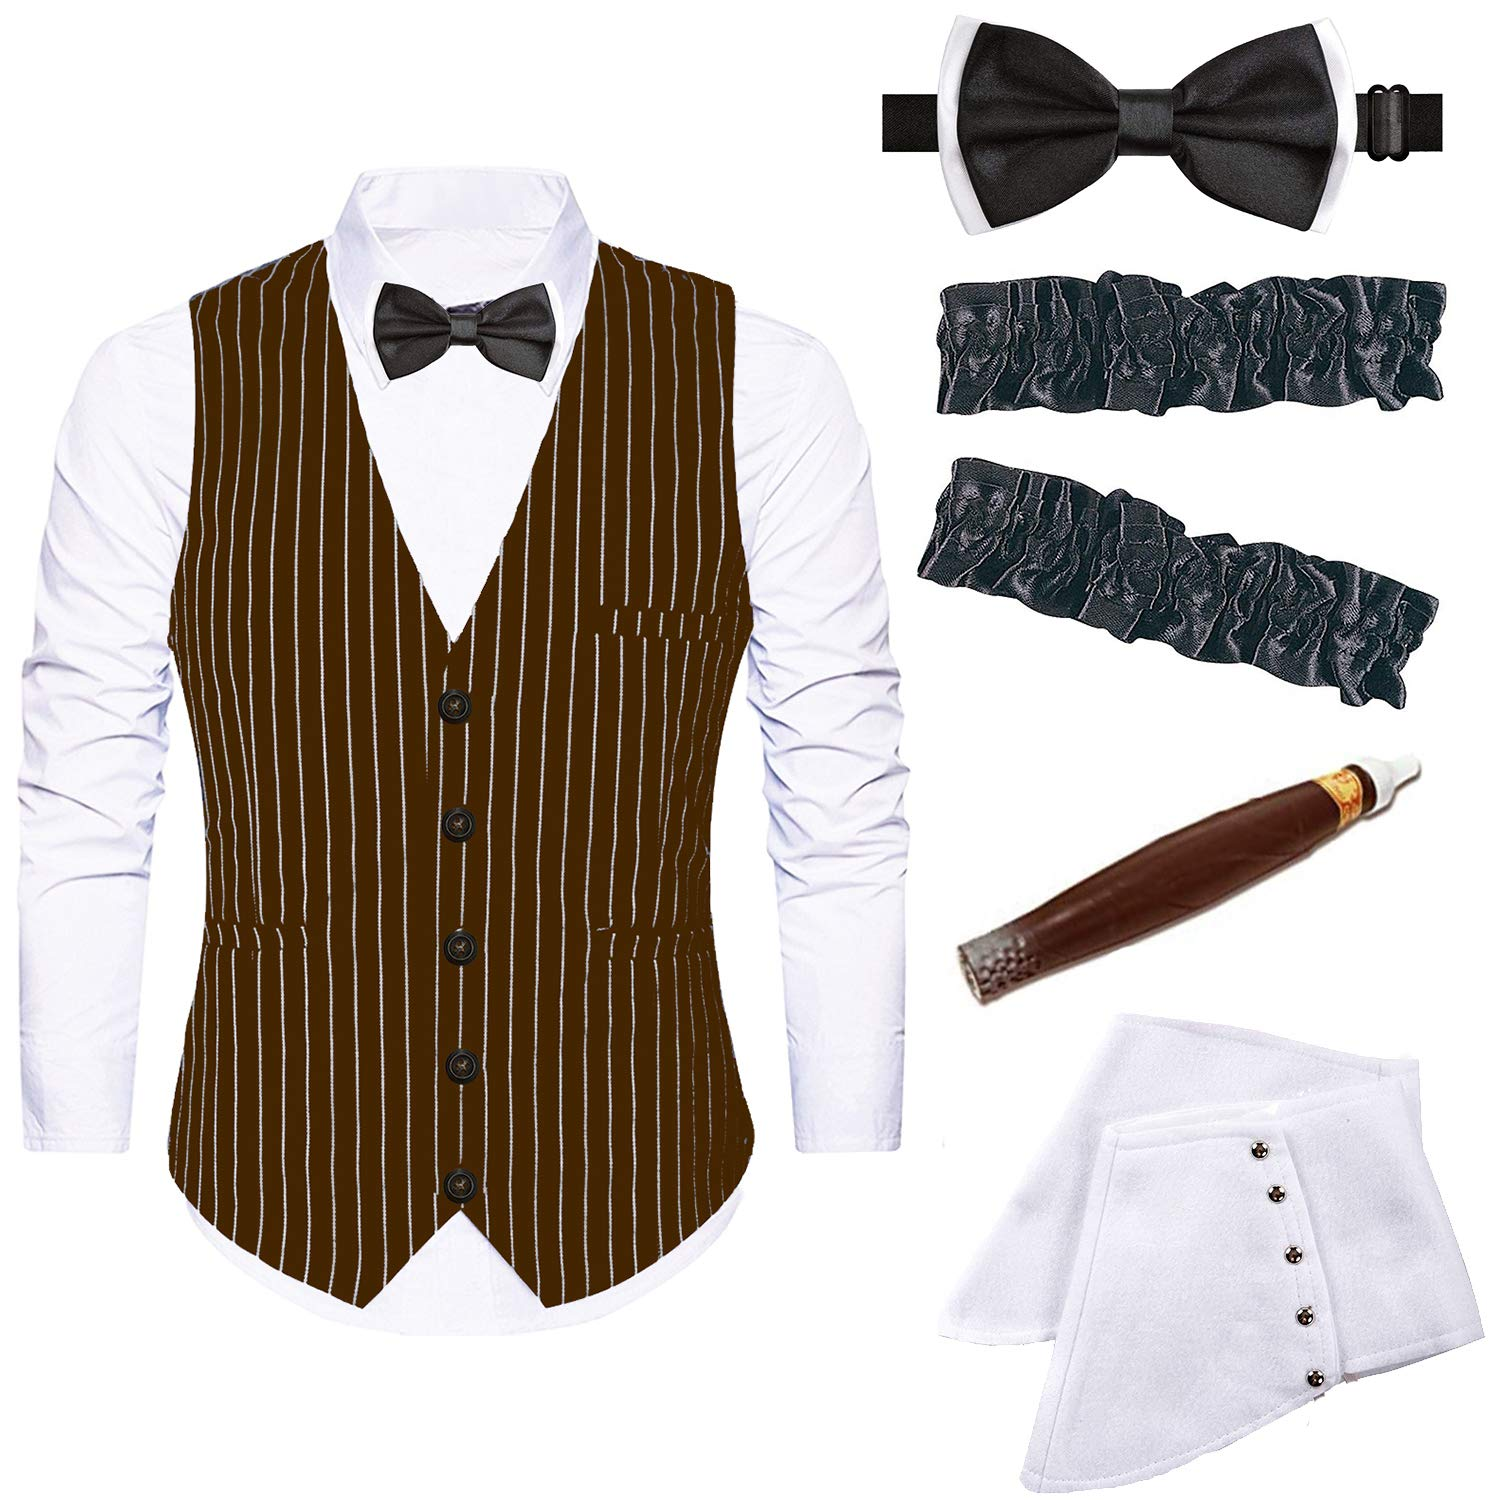 Mens 1920s Accessories Gangster Stripe Vest Set - Gangster Spats,Armbands,Pre Tied Bow Tie,Toy Fake Cigar (Medium, Brown) by EFORLED